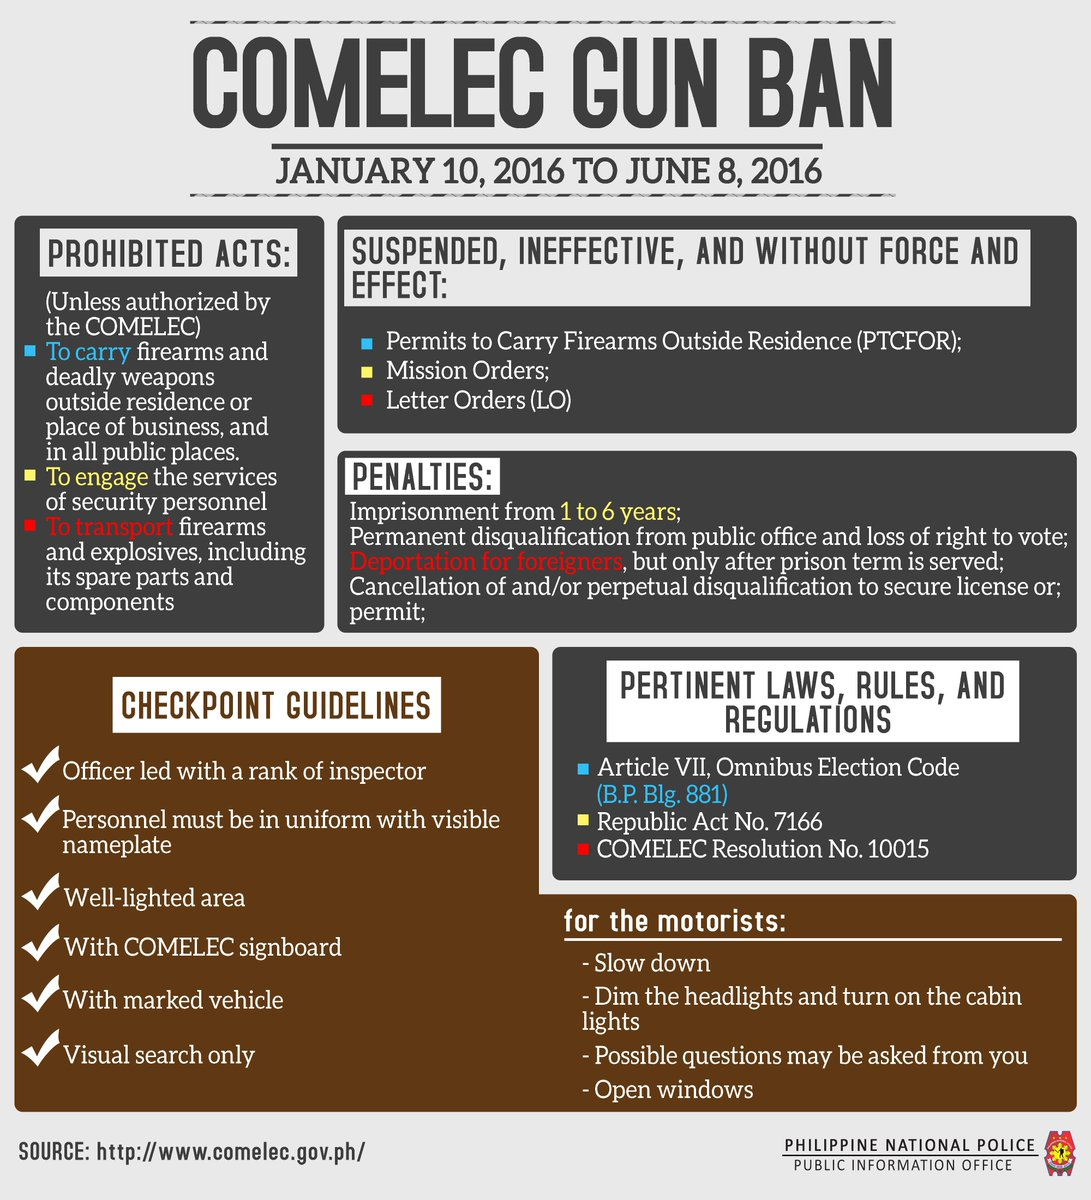 Things you need to know about the COMELEC gun ban https://t.co/EjXaYHdHK4